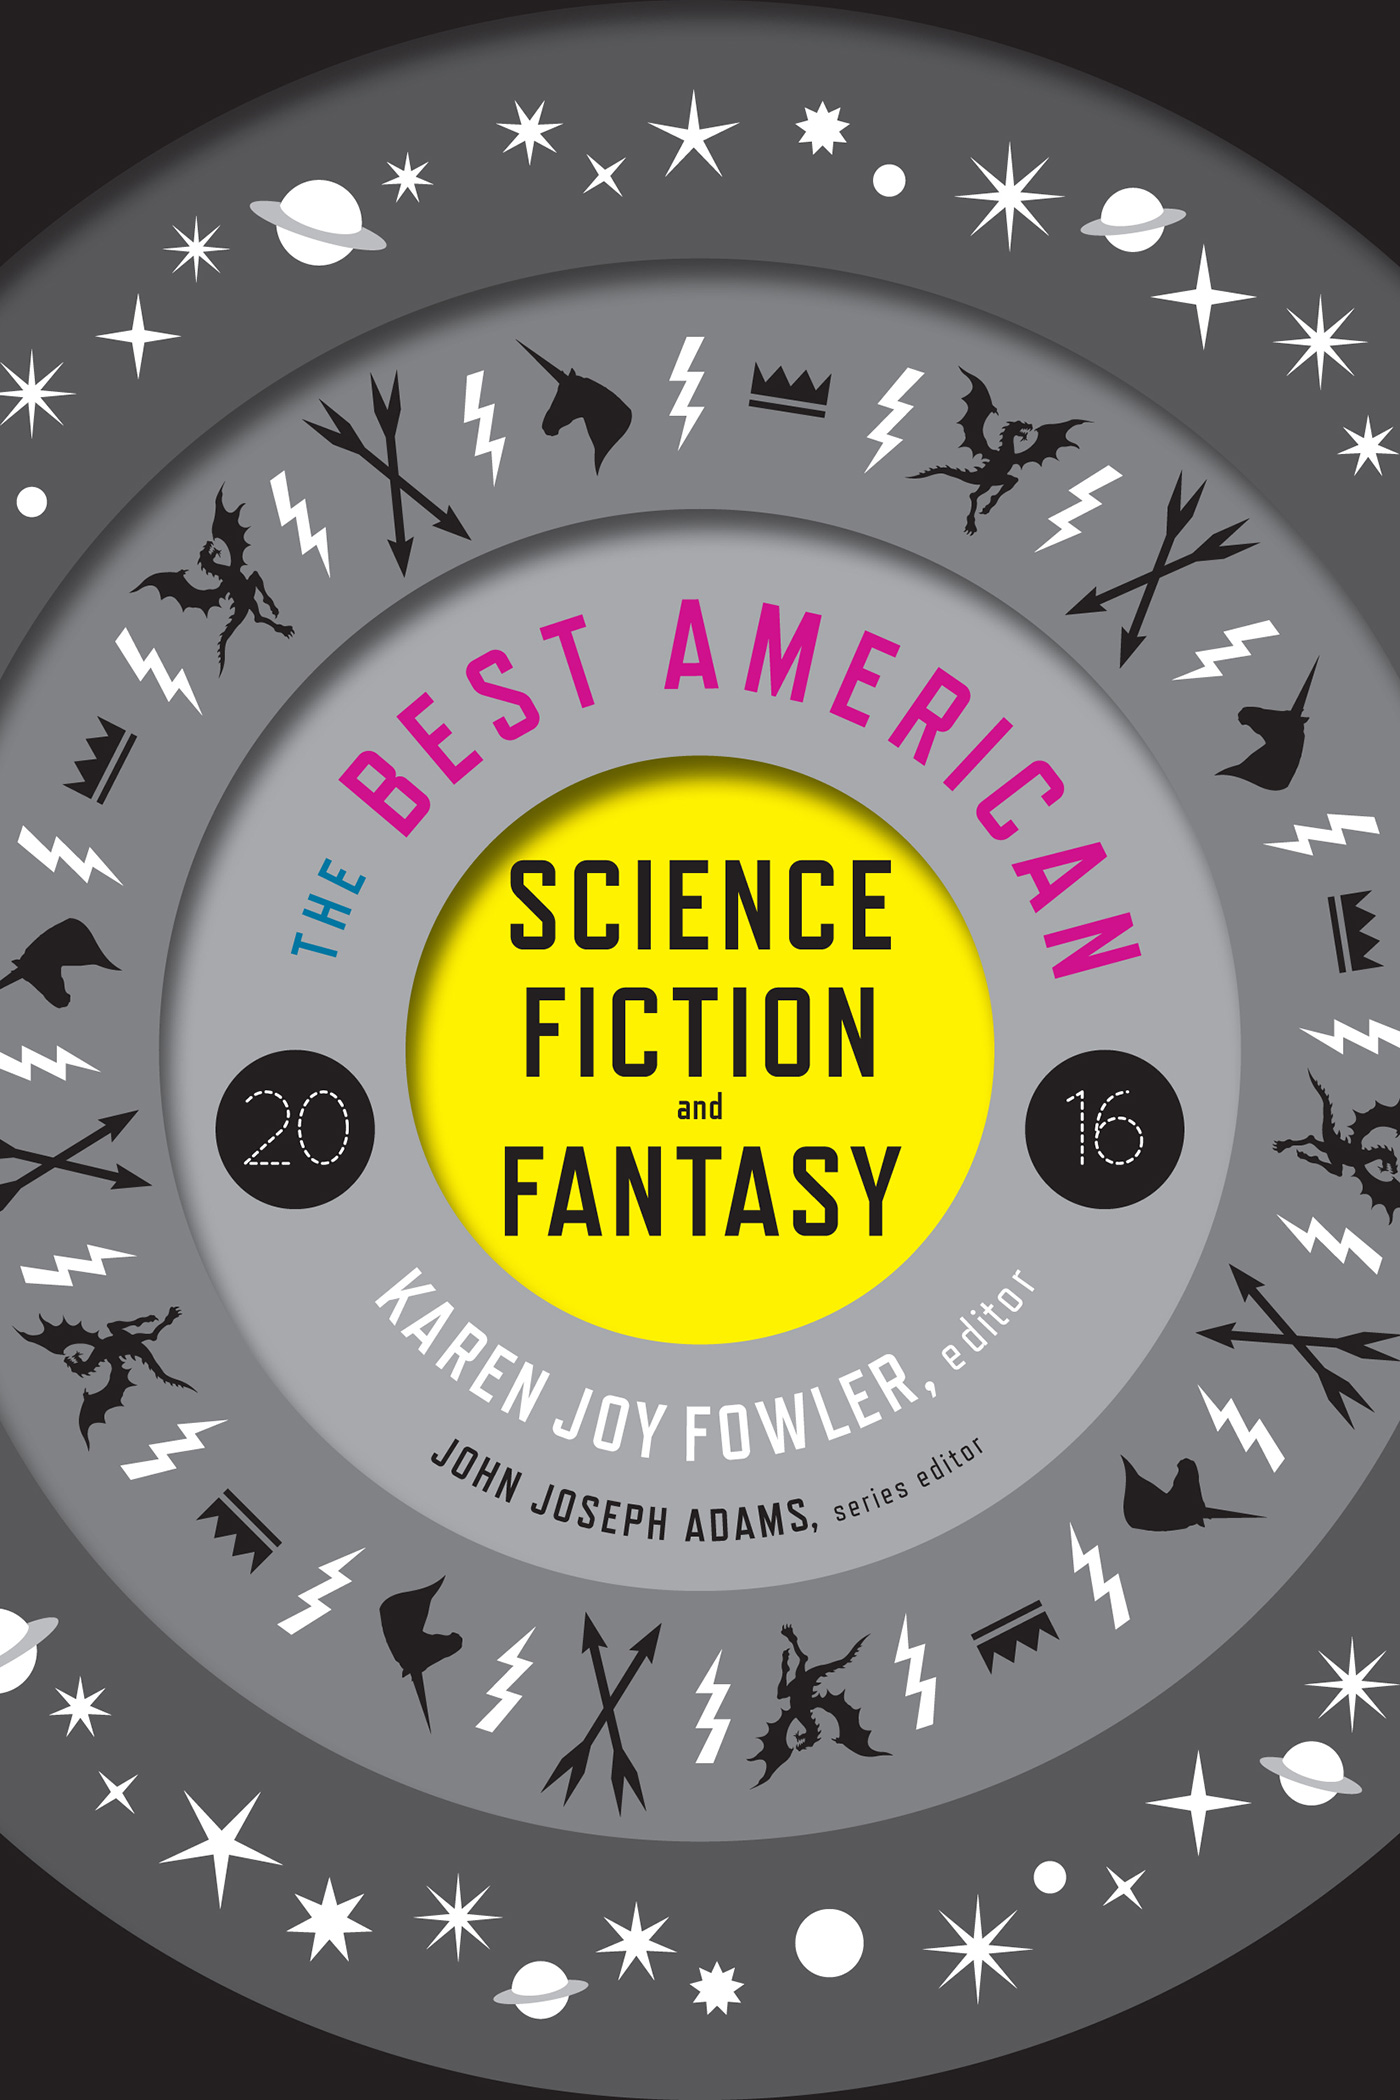 The Best American Science Fiction and Fantasy 2016-9780544555204